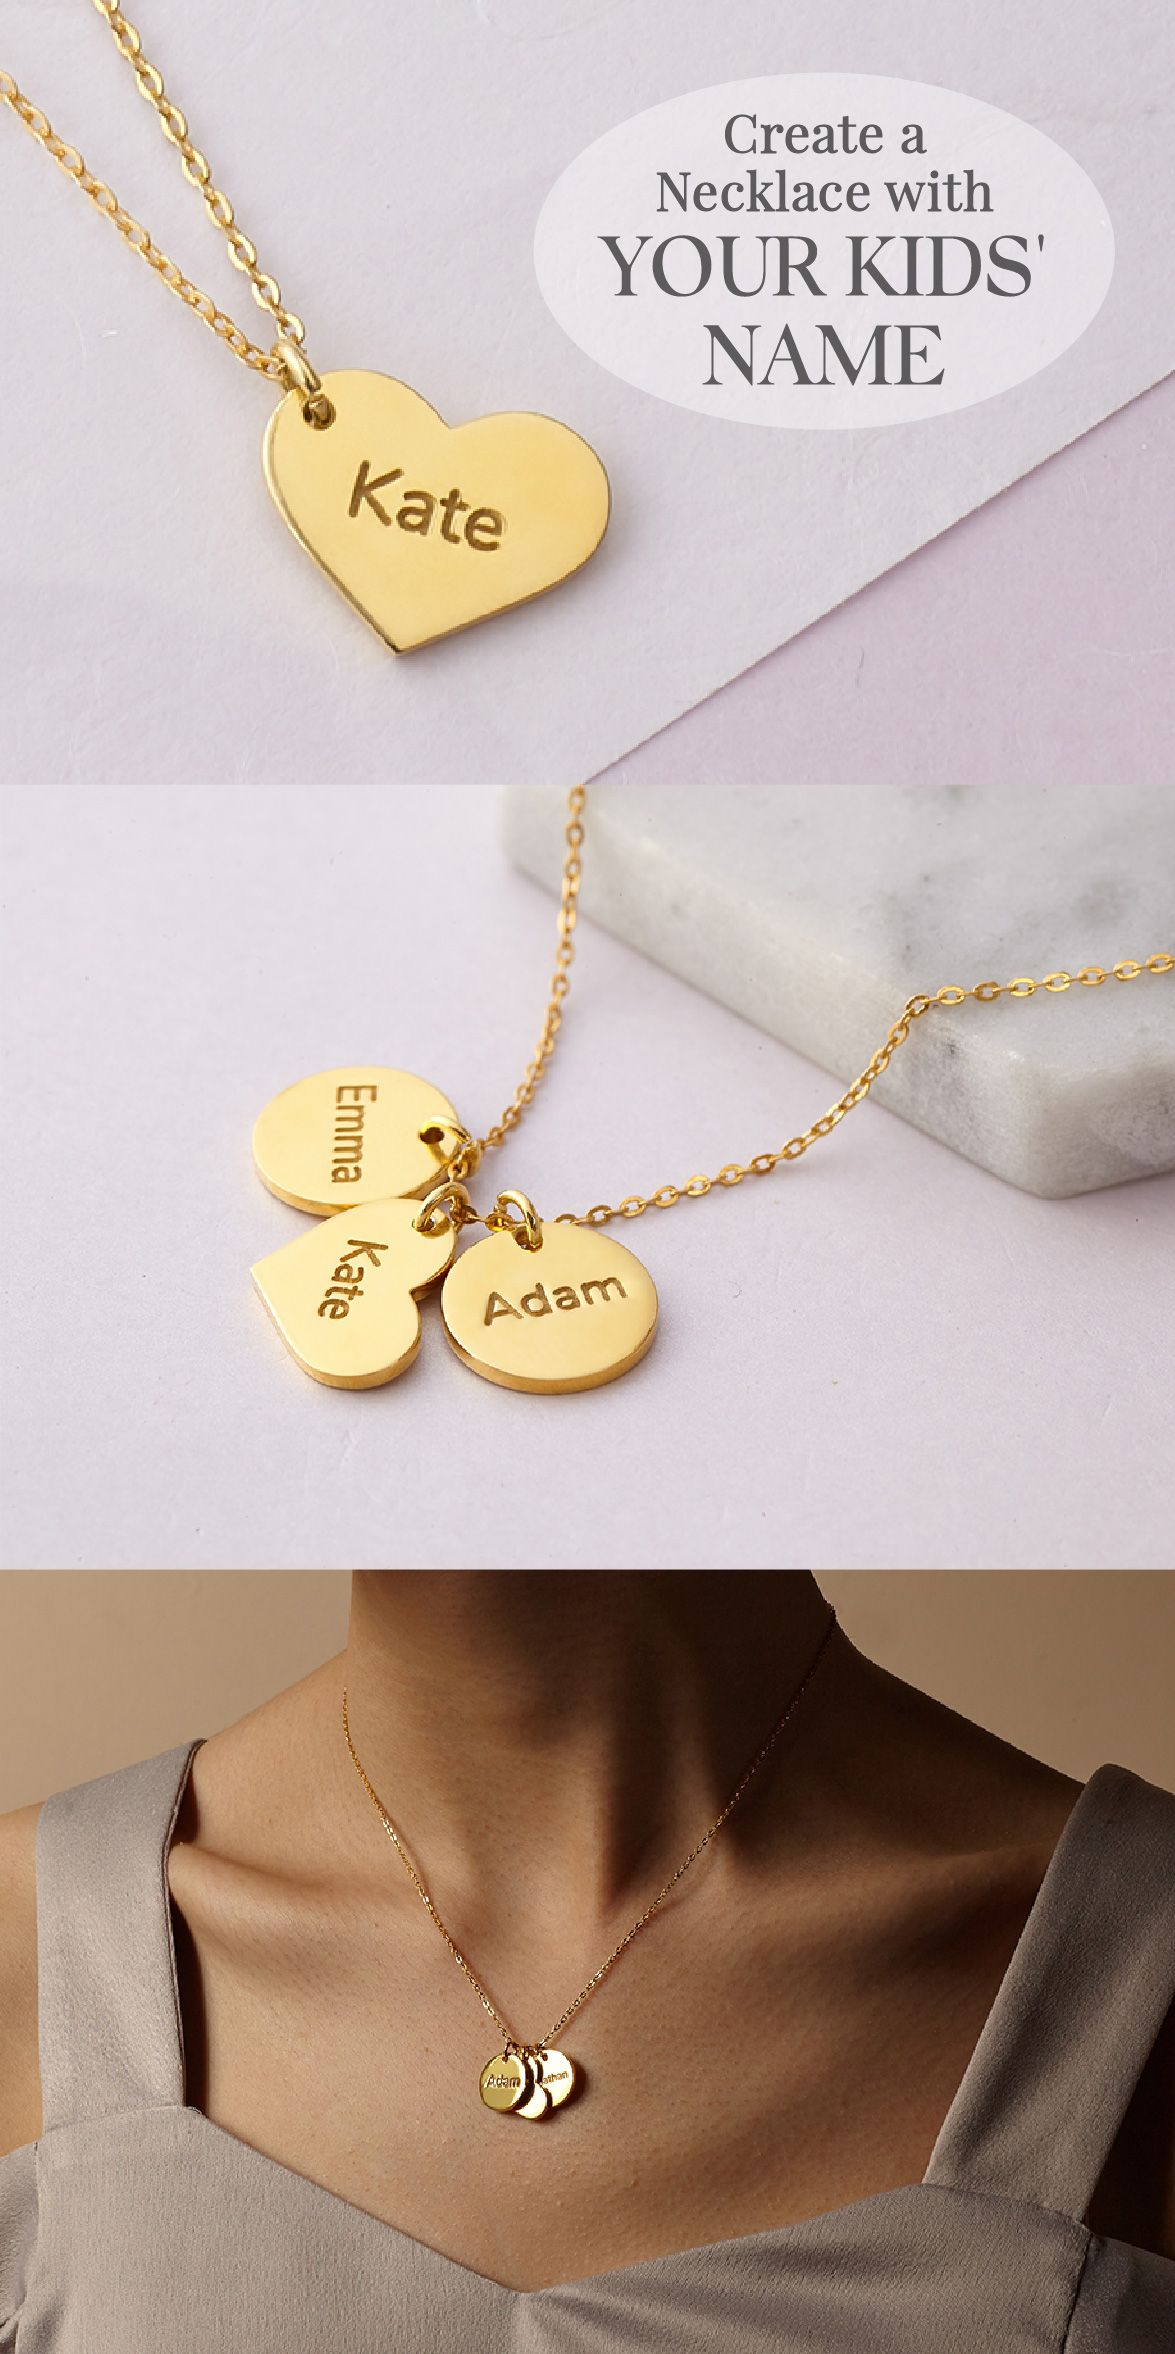 8d285cd75 Personalized Name Necklace Gold • Name Necklace For Mother • Kid Name  Necklace With Charm • Gold Necklace With Name • Personalised Kids' Name  Necklace For ...